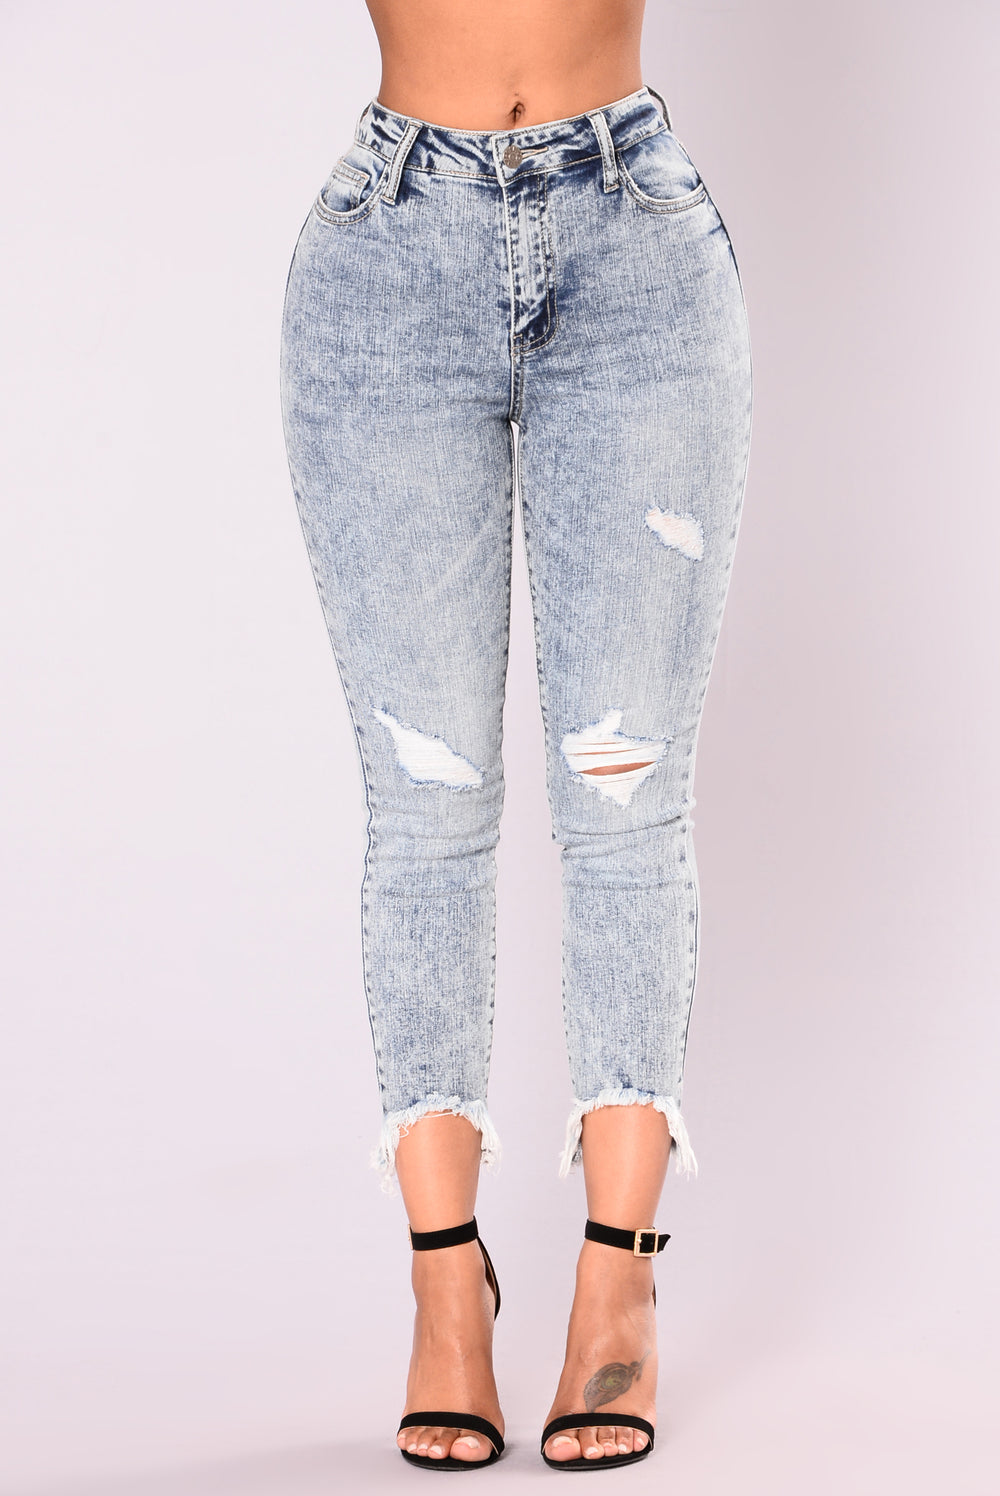 Rosewood Jeans - Light Wash